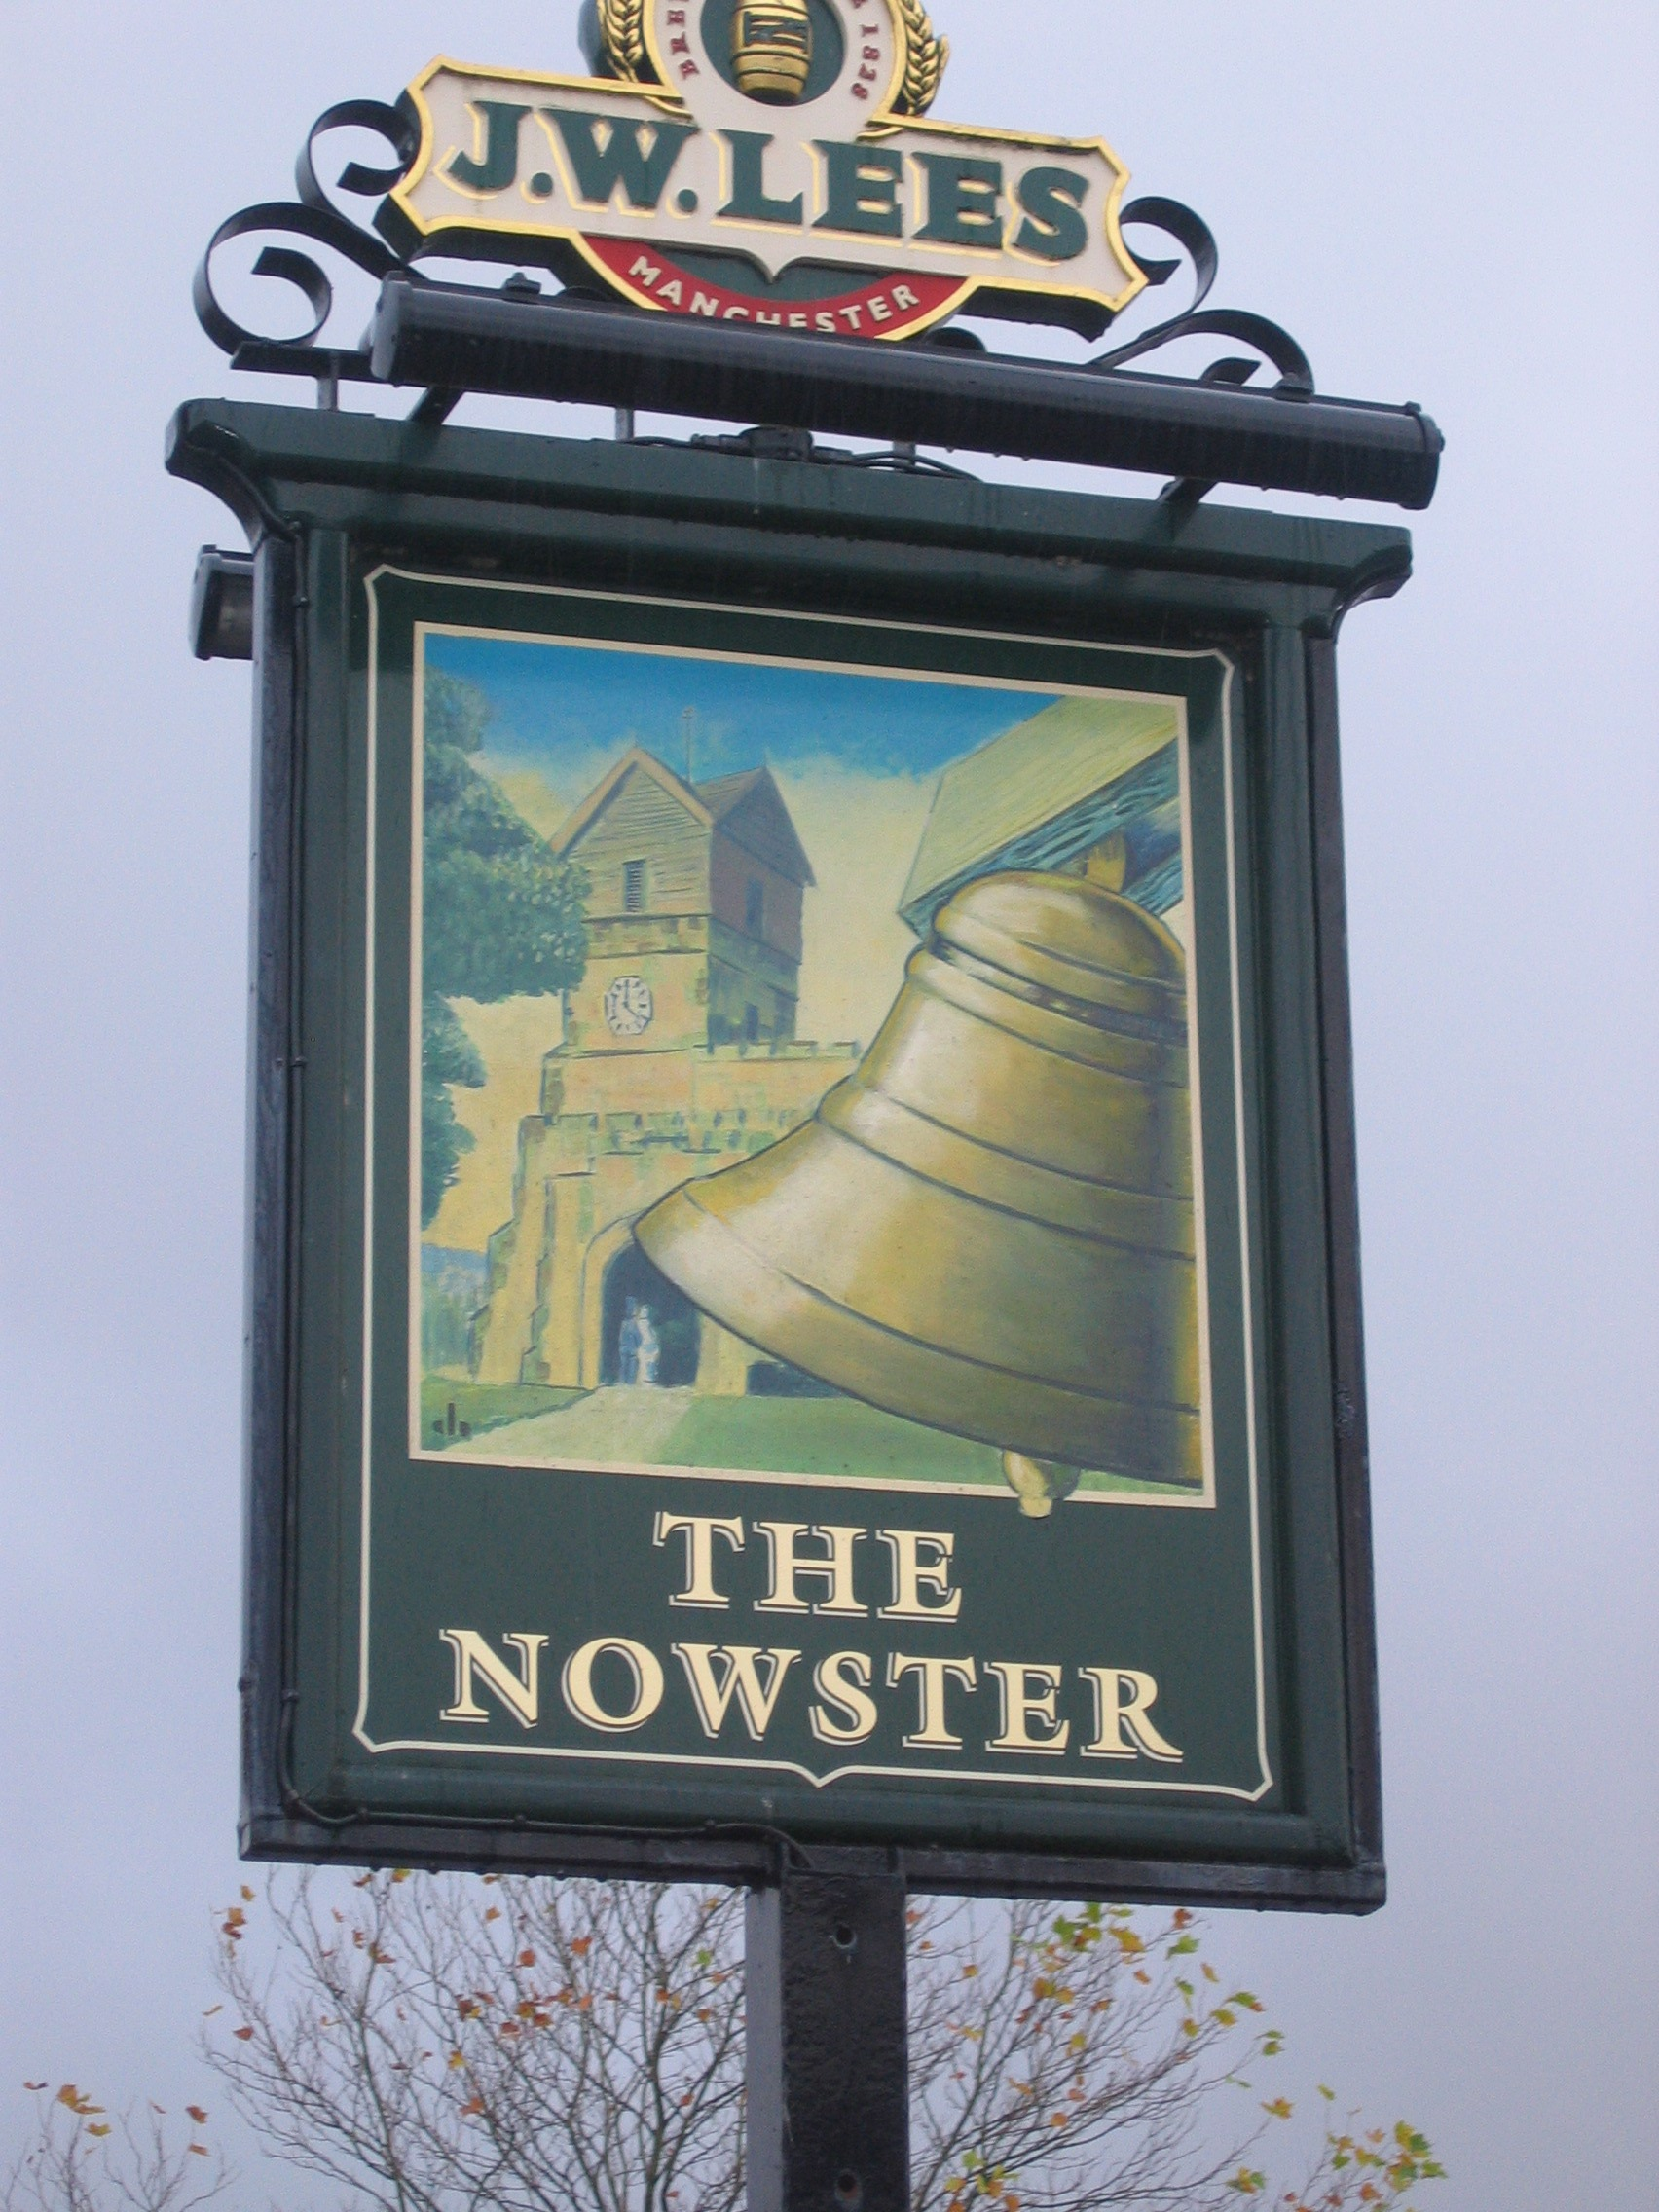 Photo taken by me - The Nowster pub sign - Middleton - Greater Manchester